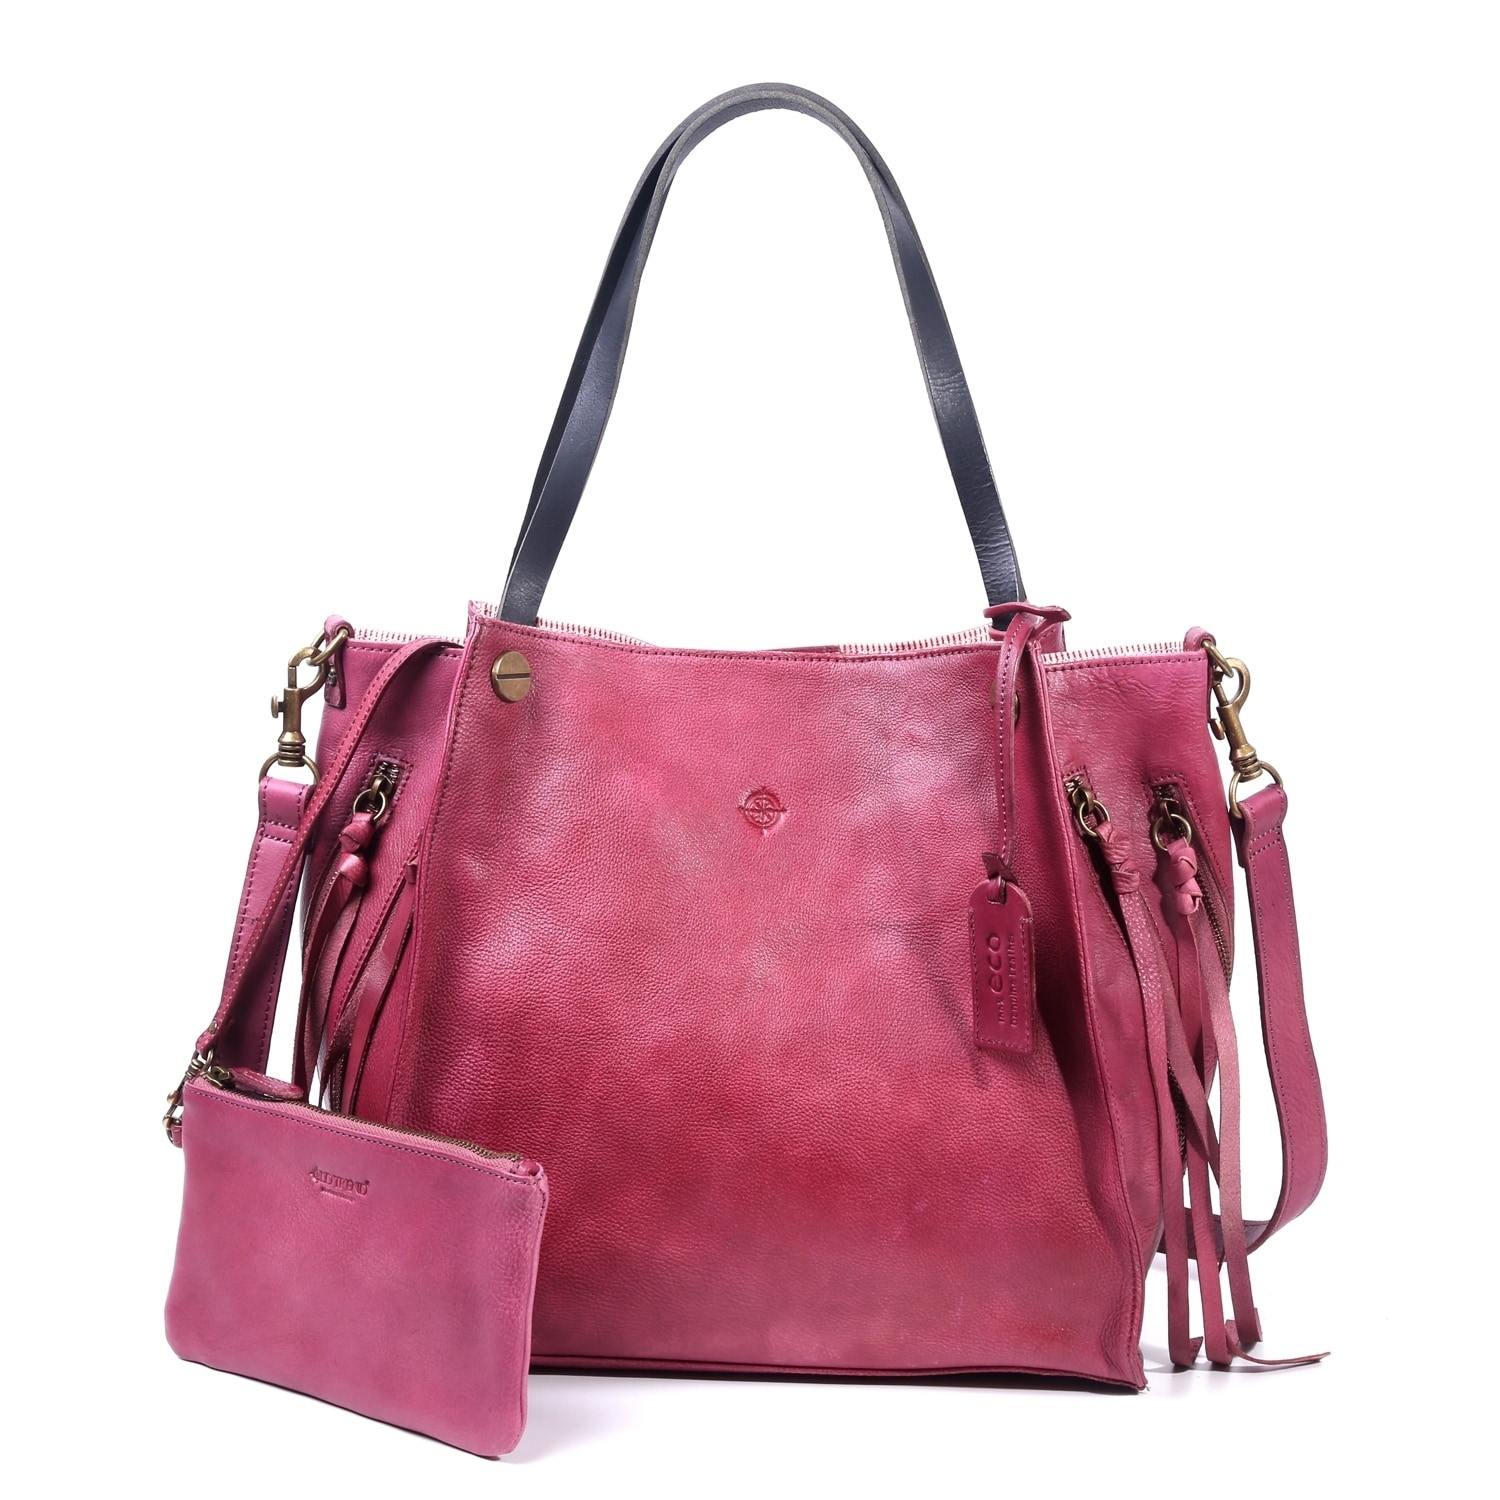 Pink Handbags Our Best Clothing Shoes Deals Online At